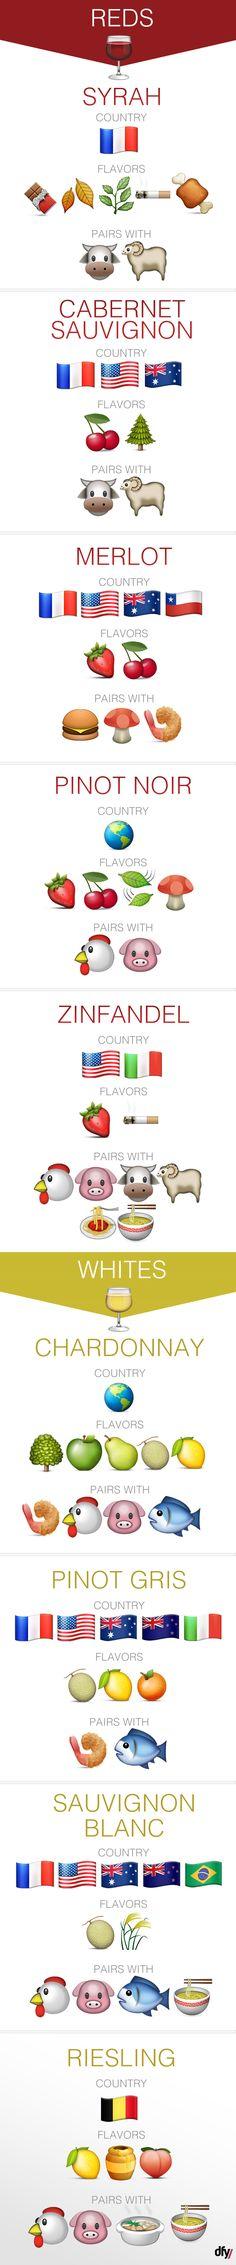 Everything You Need To Know About Wine, Summed Up By Emojis